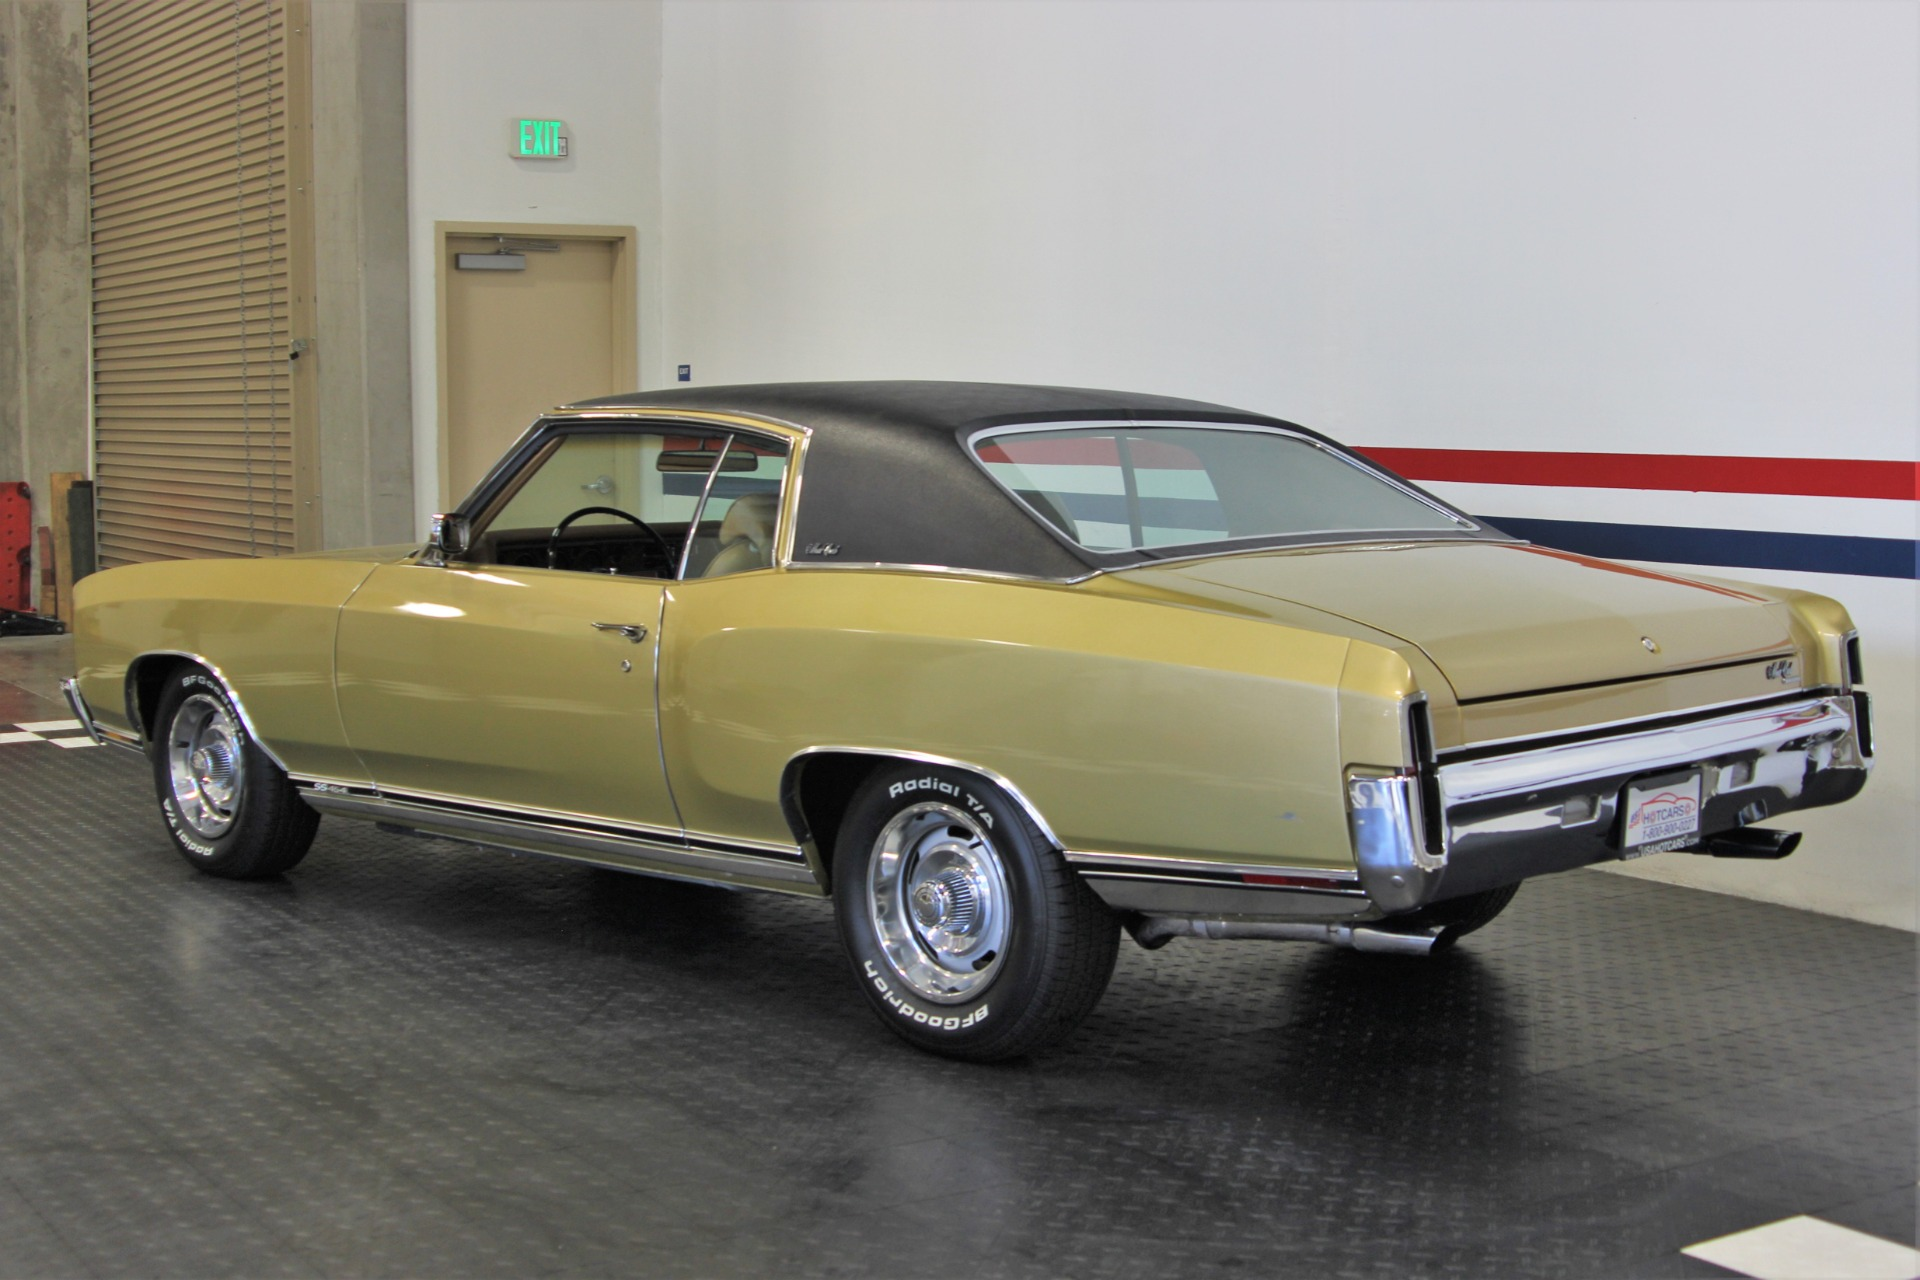 Used-1970-Chevrolet-Monte-Carlo-Super-Sport